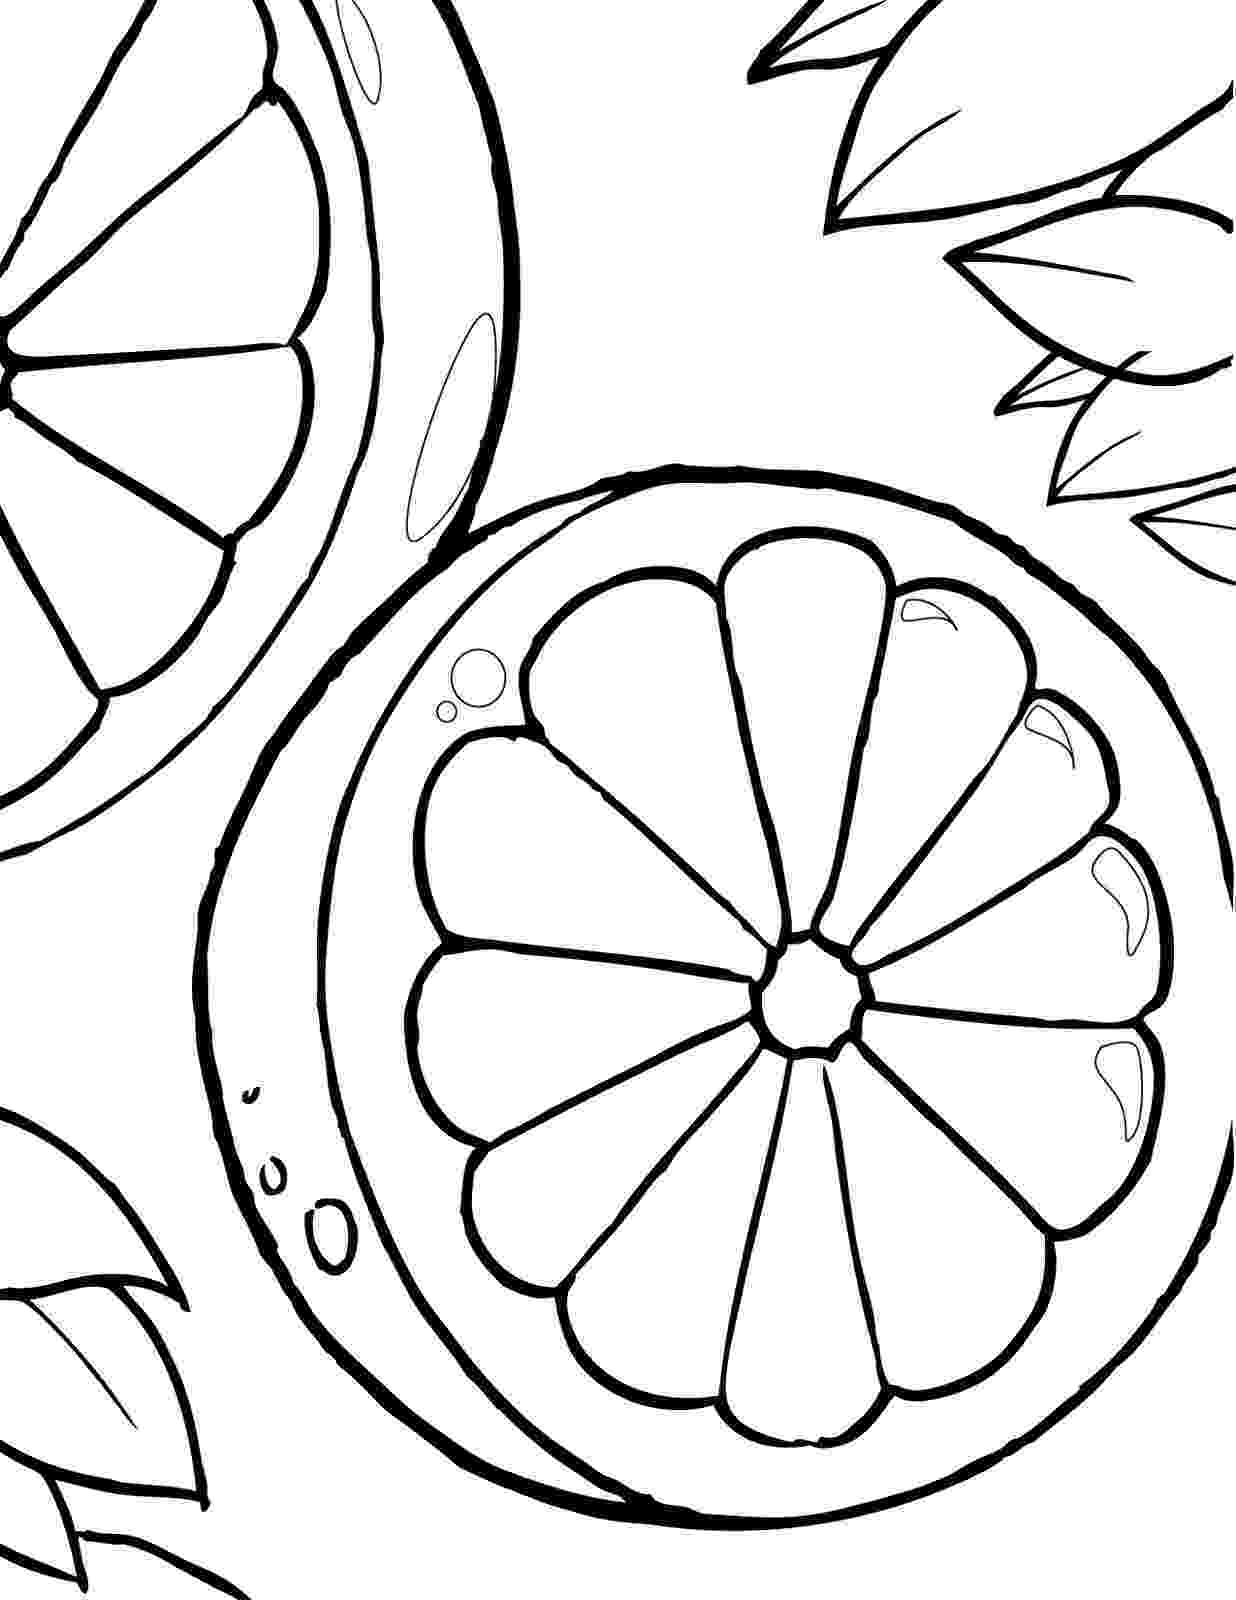 colering pages the hero of color city coloring book colering pages